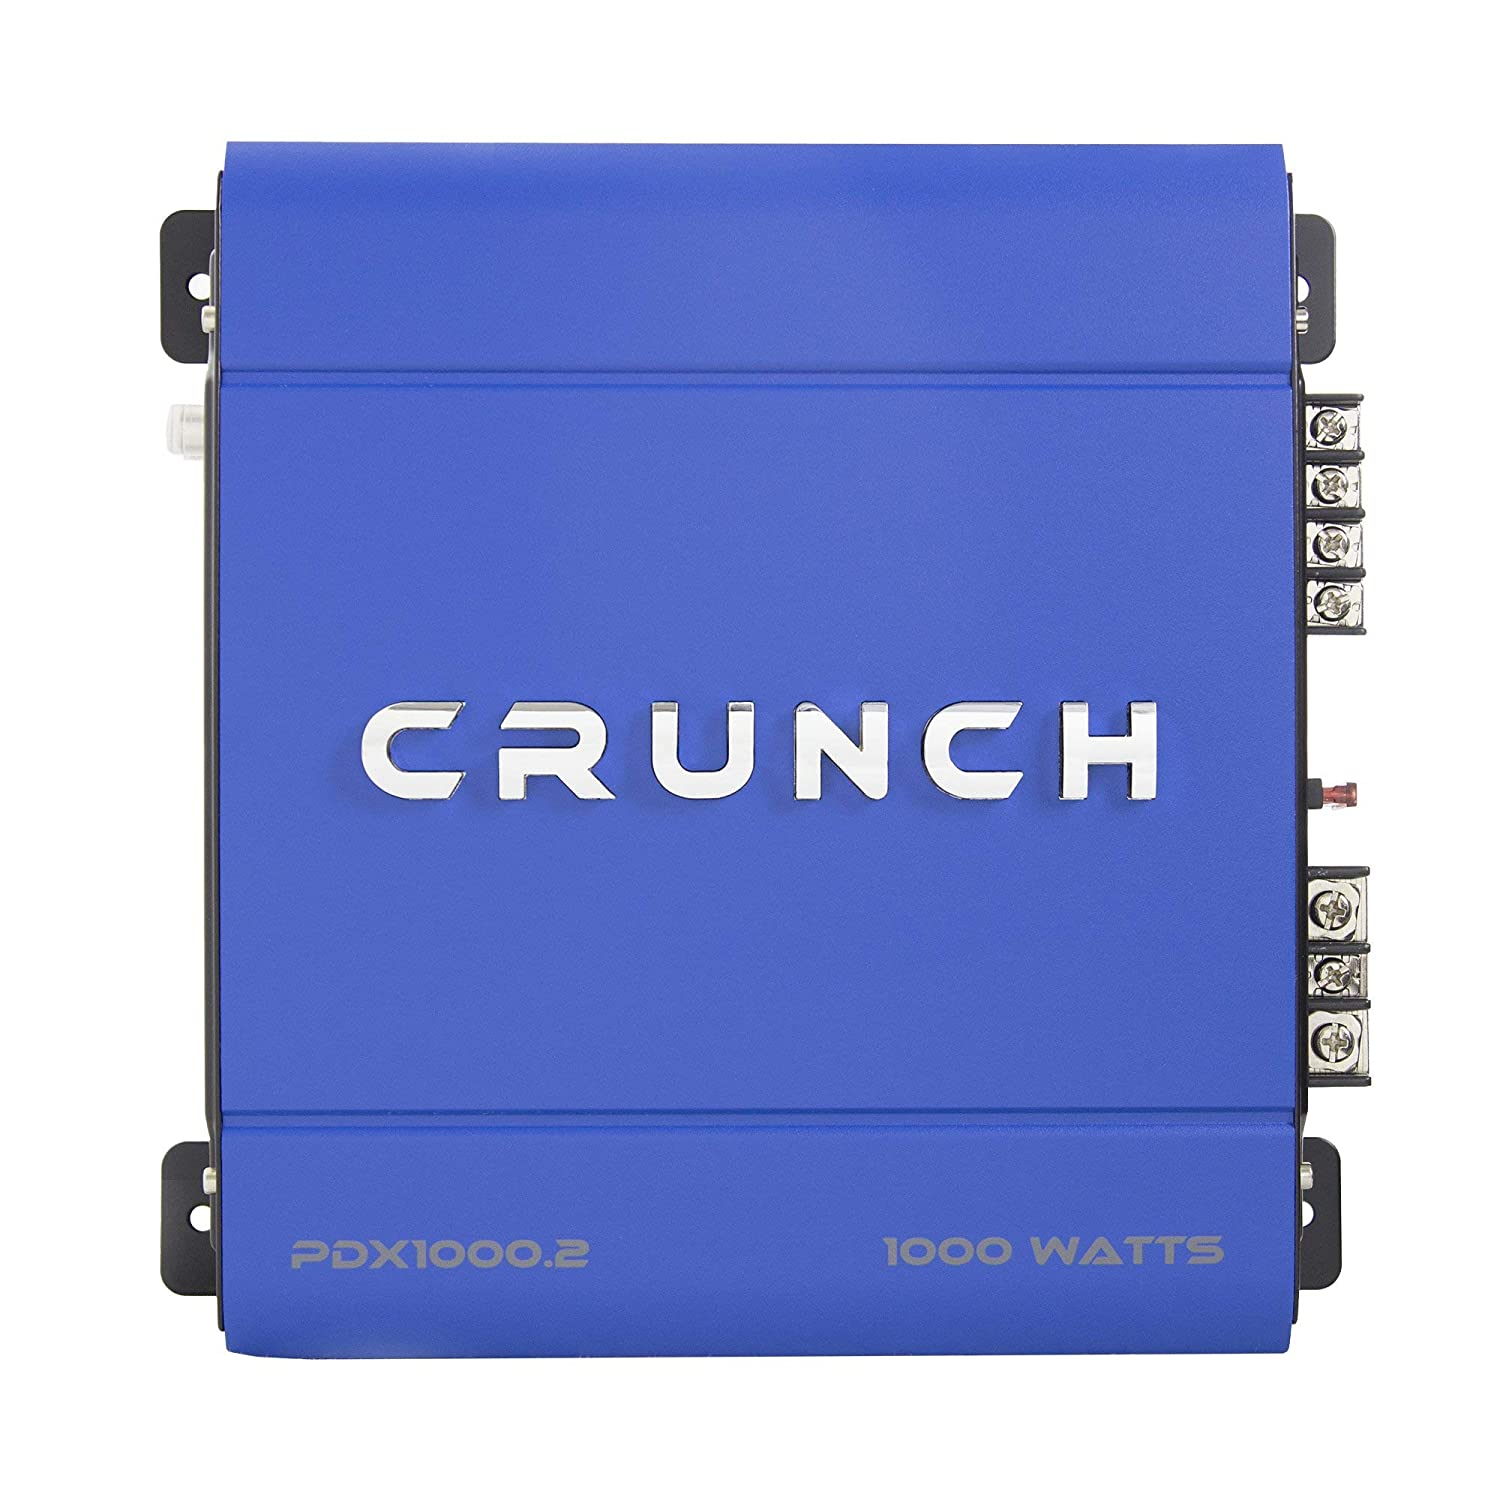 Crunch Powerdrivex 1000 Watt 2 Channel Exclusive Blue A Boss Kit2 8 Gauge Complete Amplifier Wiring Kit Pair Vminnovations B Car Stereo Cell Phones Accessories